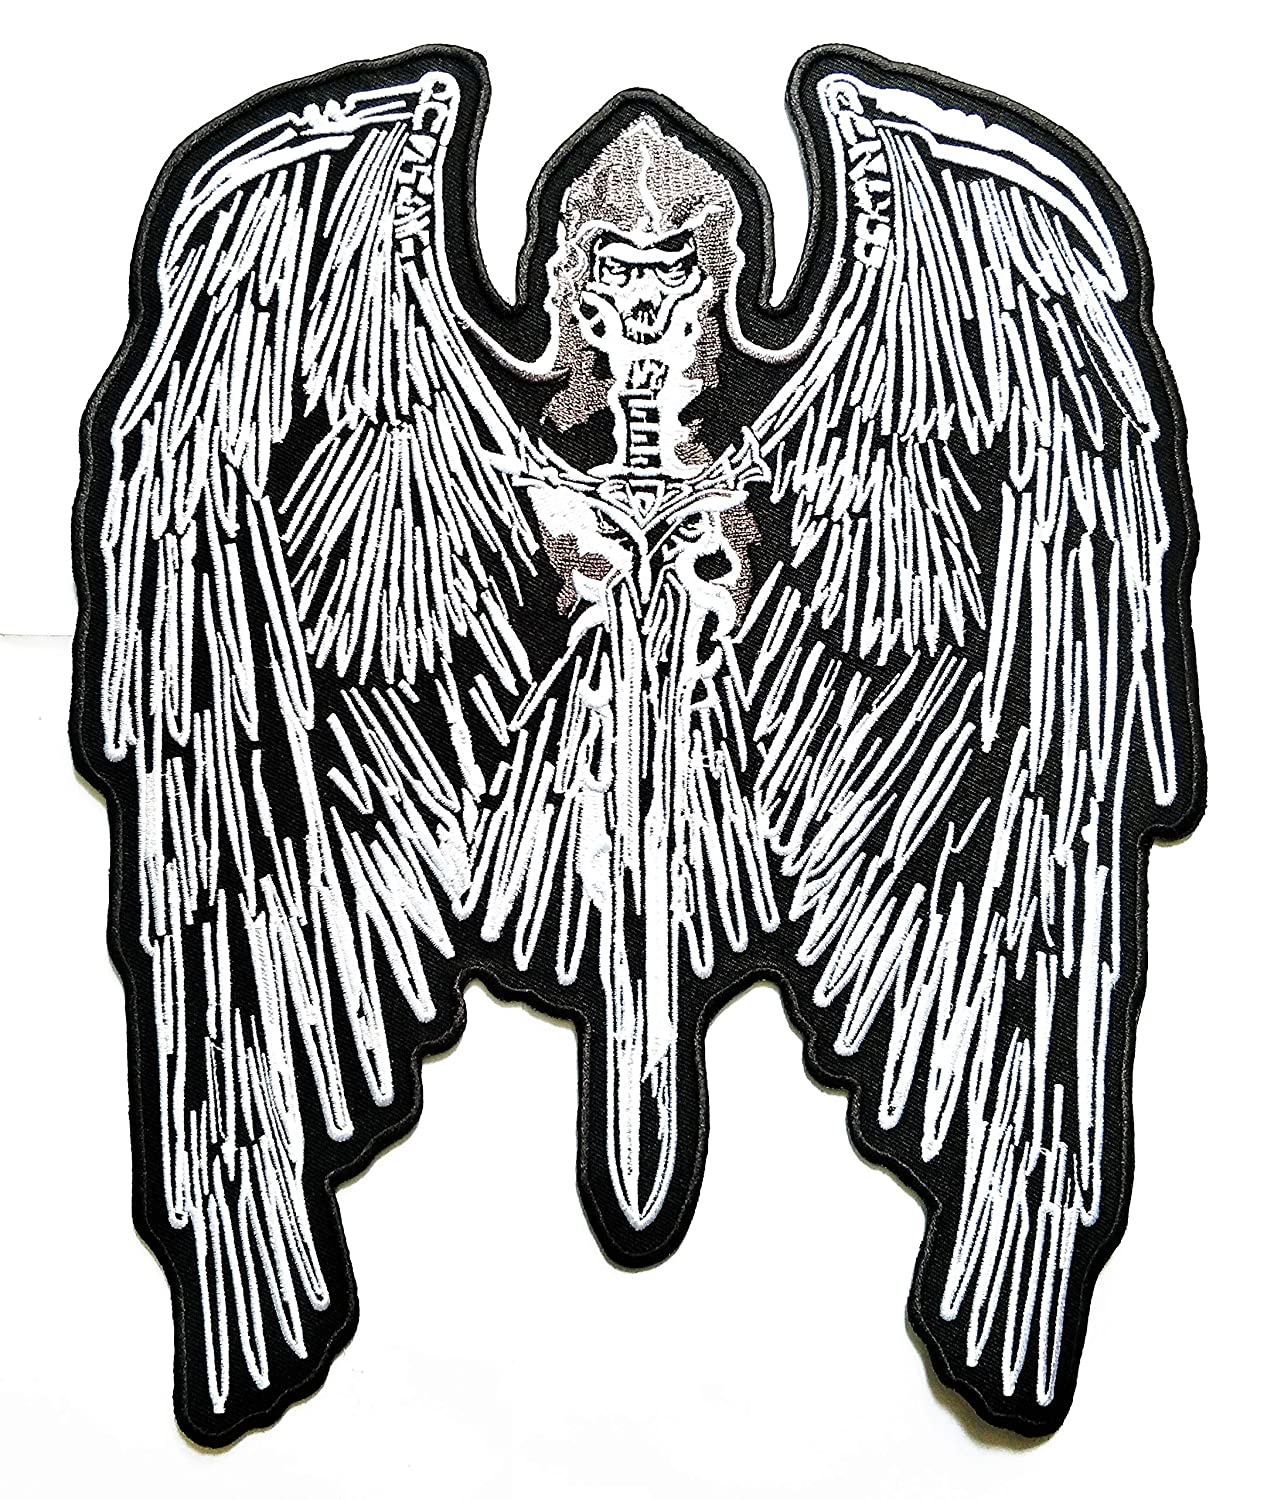 8.5'' X 10.5'' Big Jumbo Eagle Hawk Rider Skull Motorcycles Biker Patch Logo Jacket t-Shirt Jeans Polo Patch Iron on Embroidered Logo Motorcycle Rider Biker Patch by Tour les jours Shop